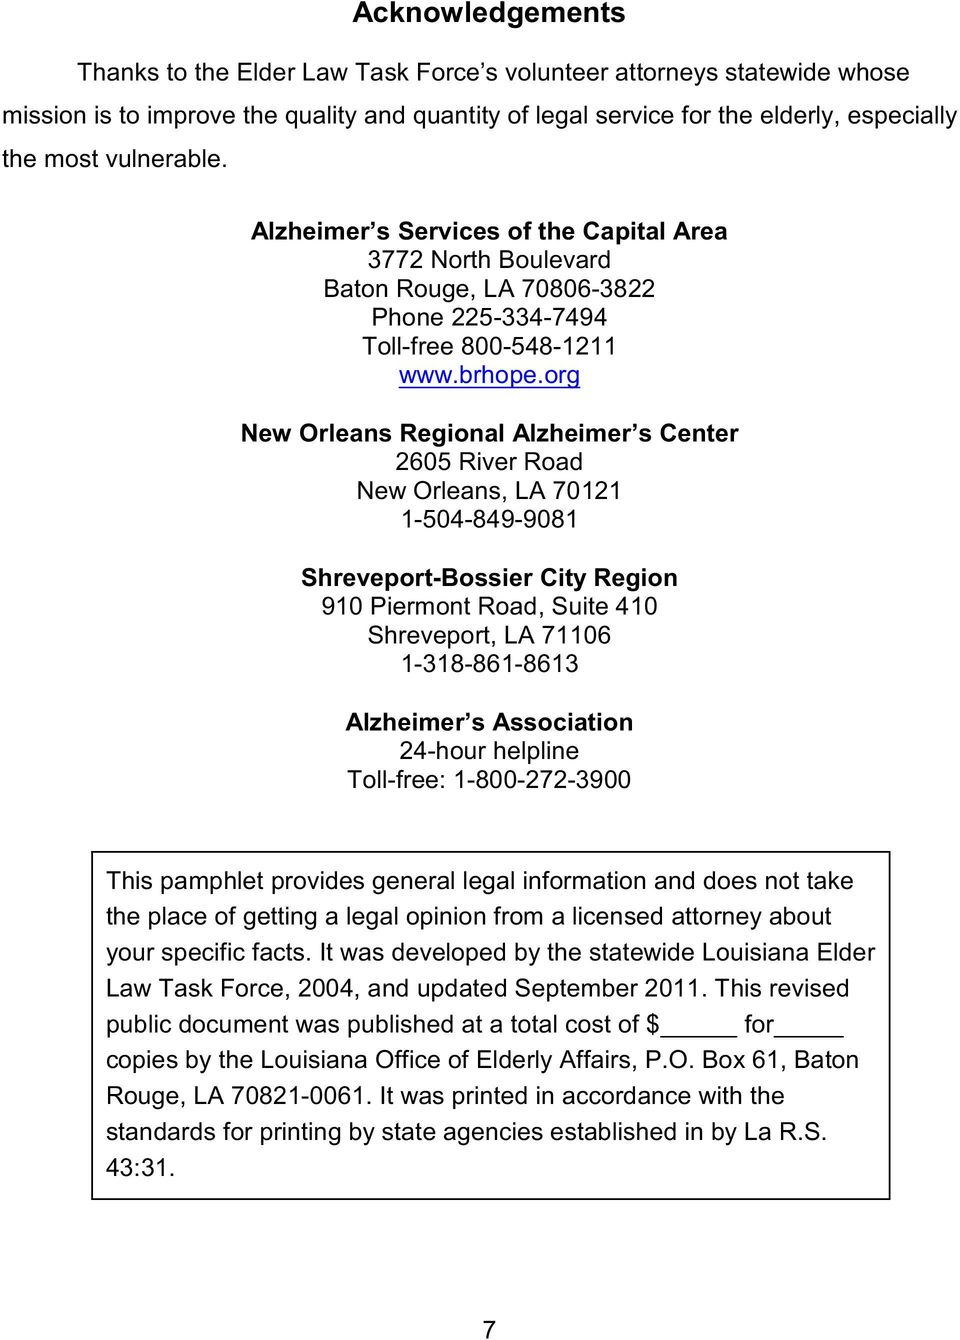 org New Orleans Regional Alzheimer s Center 2605 River Road New Orleans, LA 70121 1-504-849-9081 Shreveport-Bossier City Region 910 Piermont Road, Suite 410 Shreveport, LA 71106 1-318-861-8613